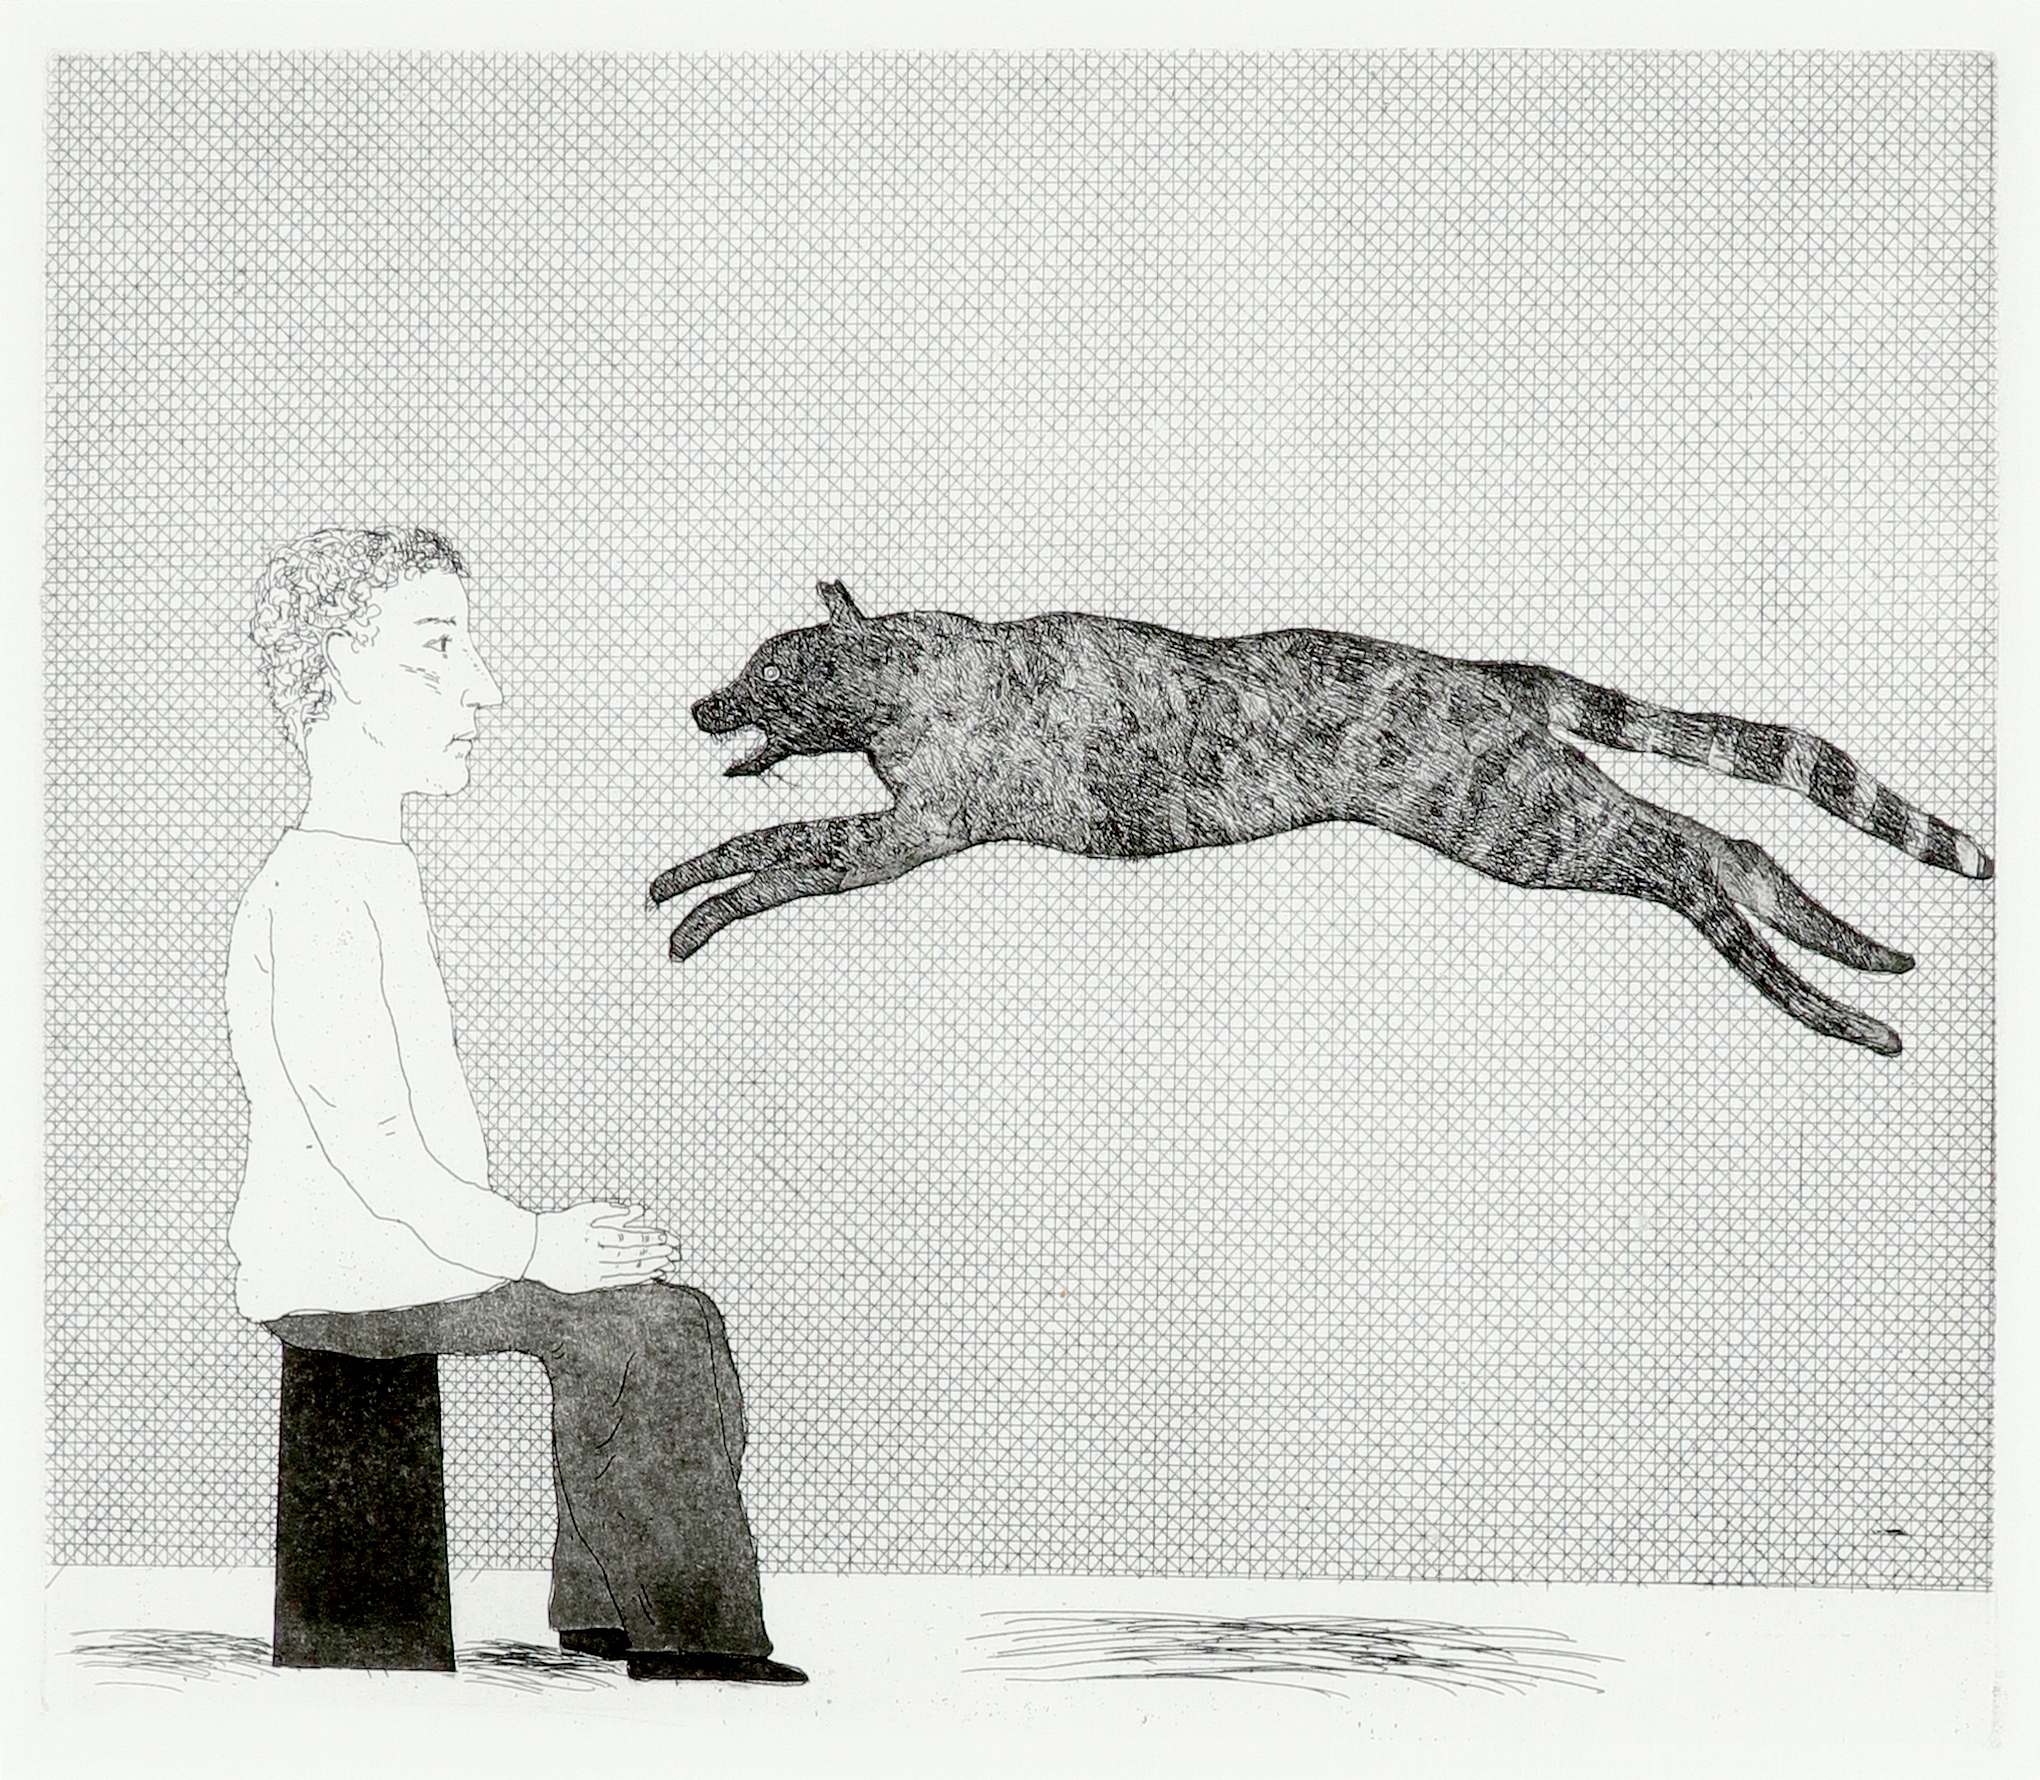 ‡David Hockney RA (b.1937) A Black Cat Leaping (S.A.C 94; M.C.A.T 91) Etching and aquatint, 1969,